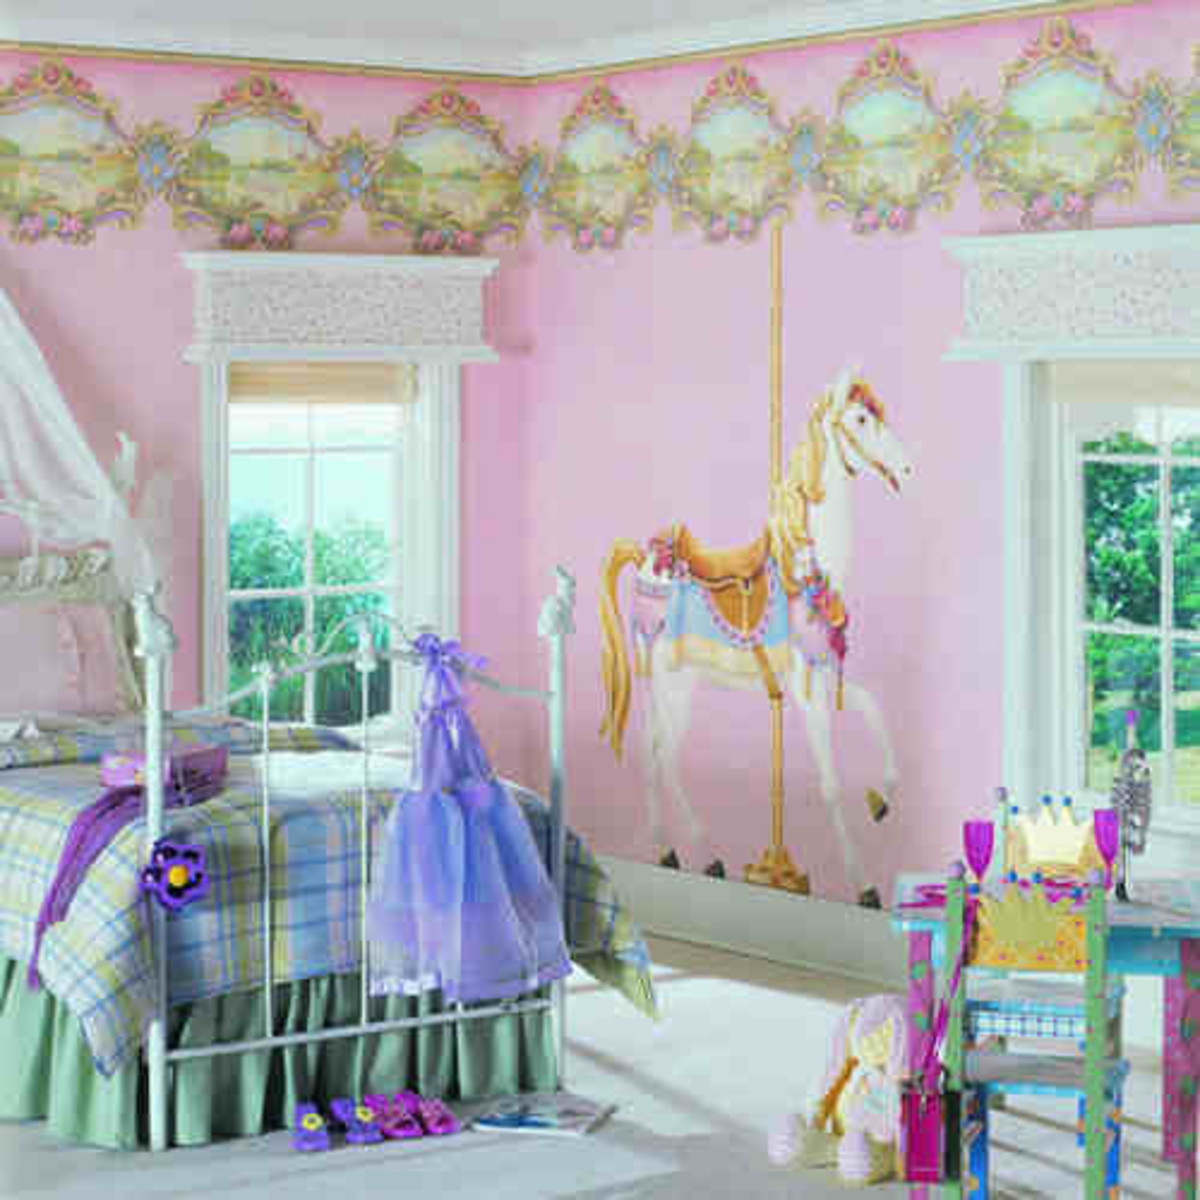 Decorate with pre-pasted or removeable murals